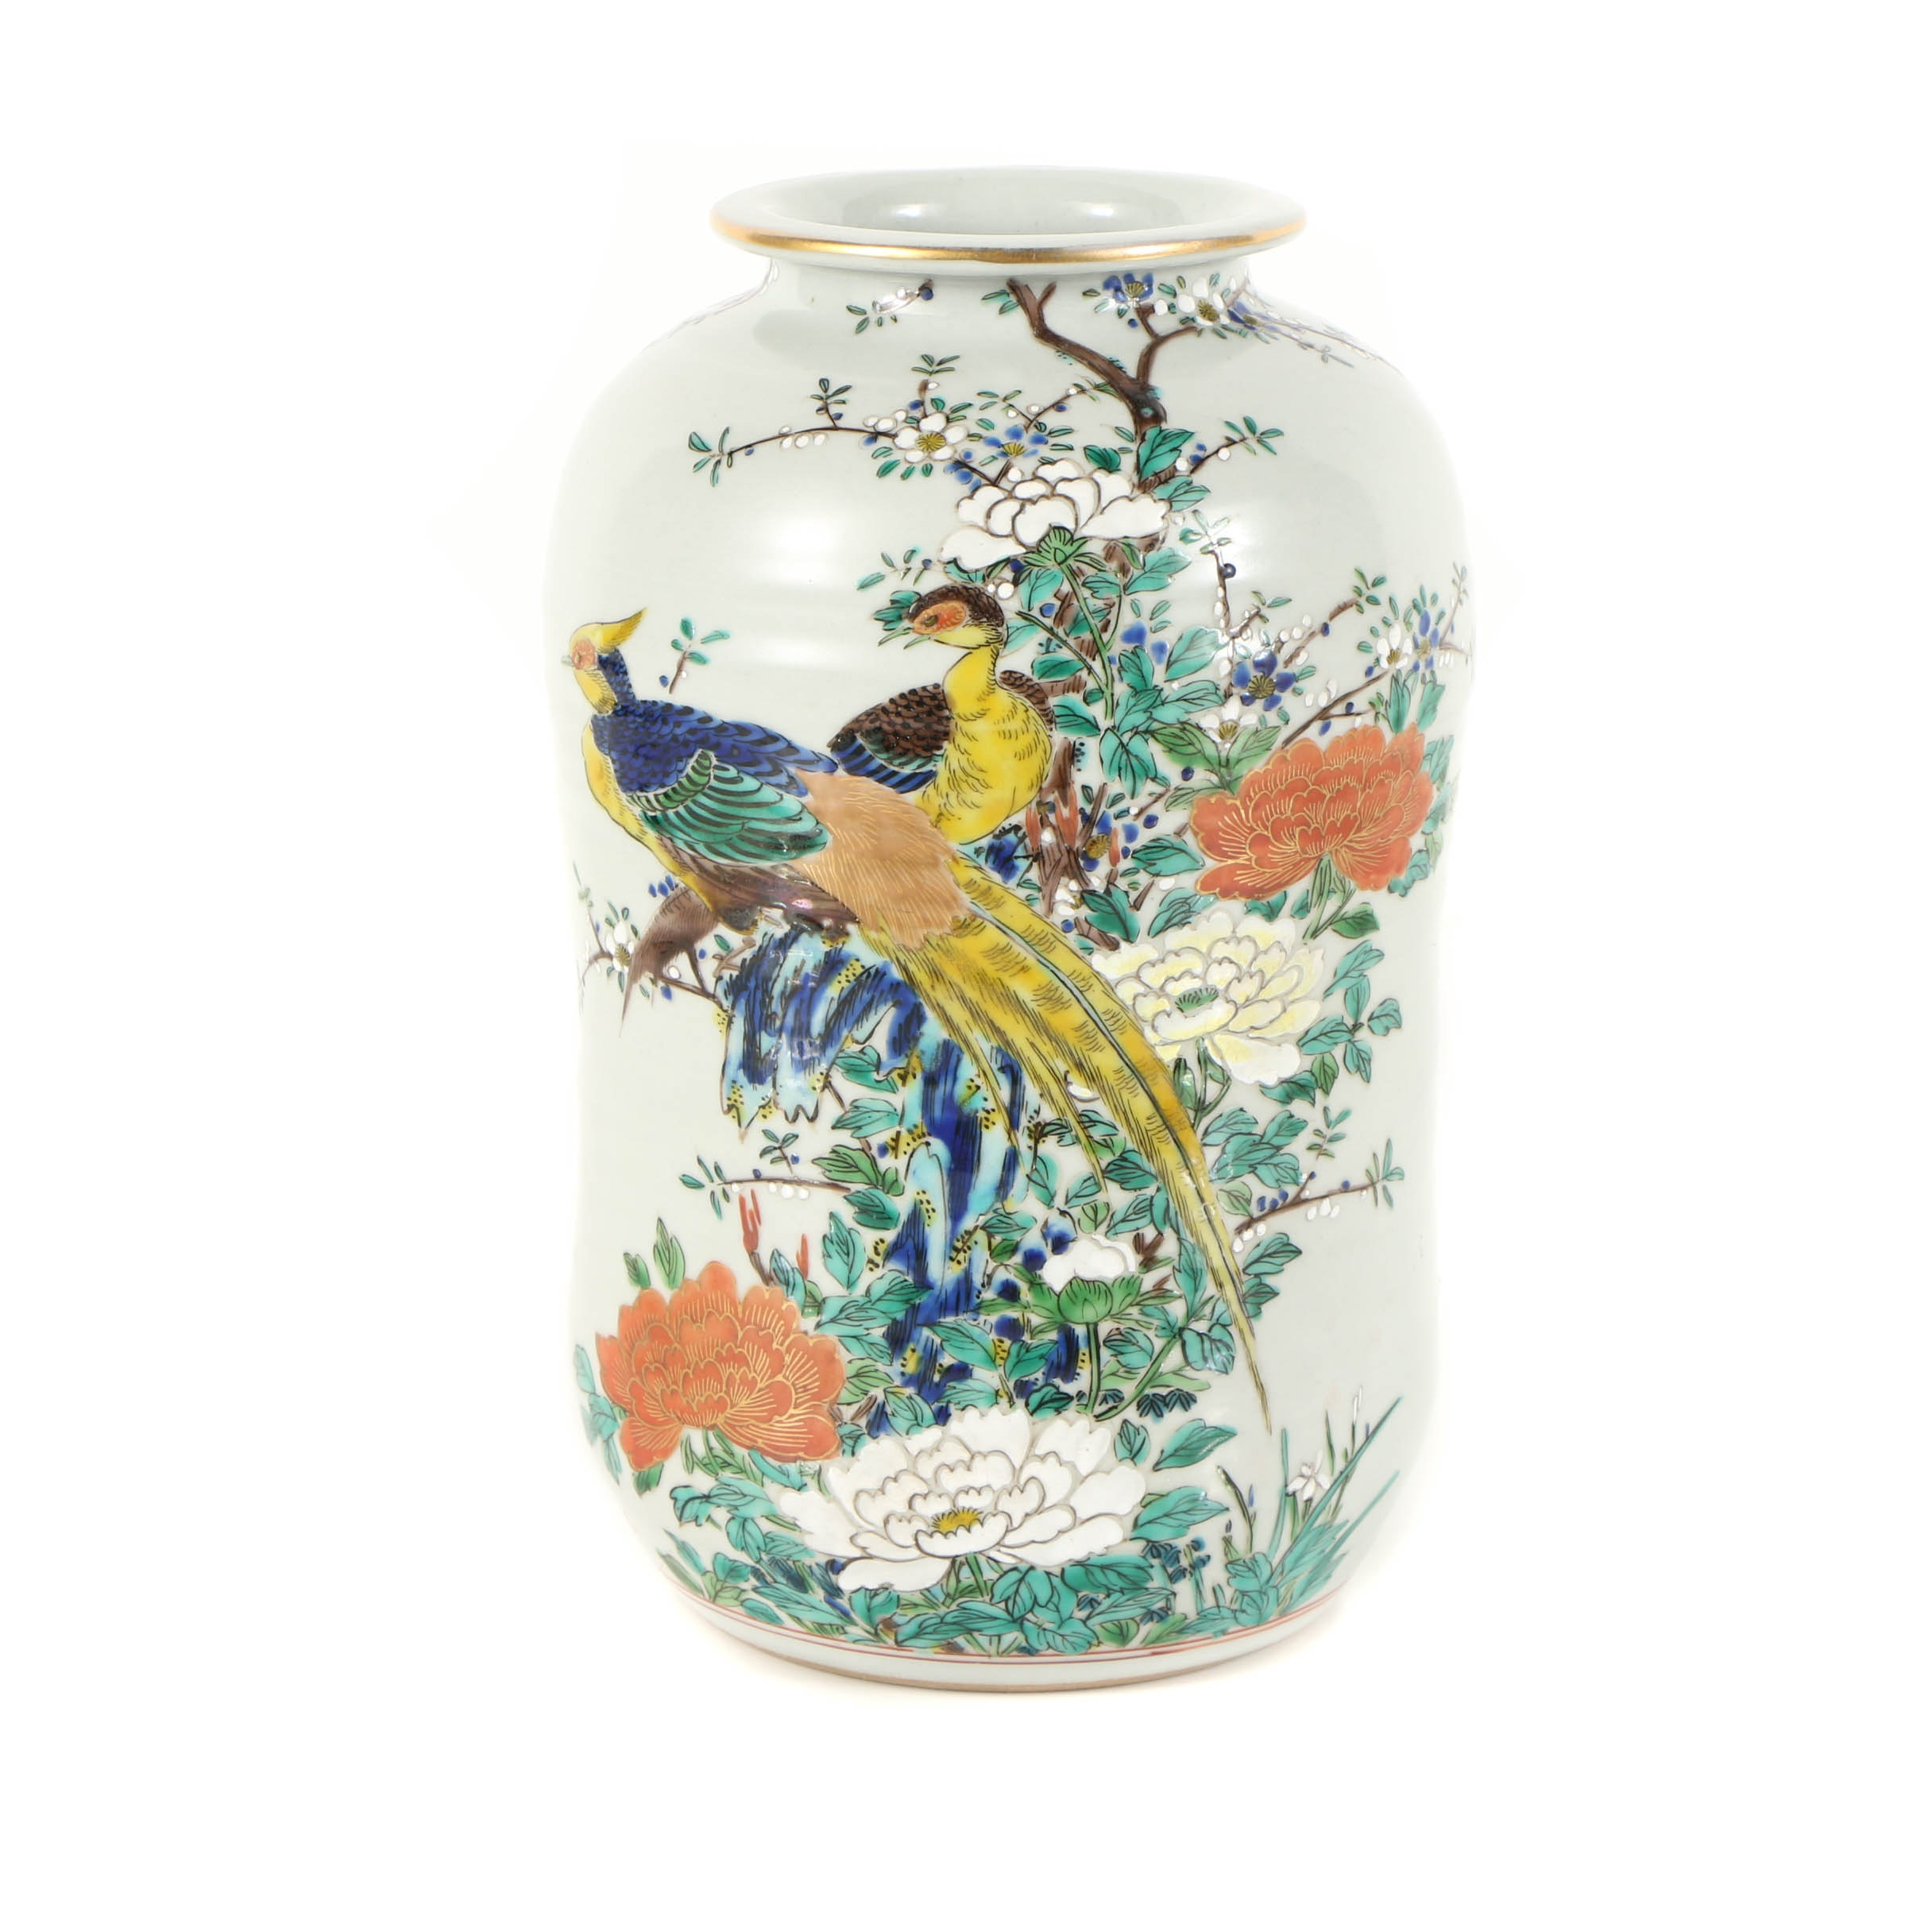 Japanese Kutani Ceramic Vase with Birds and Flowers